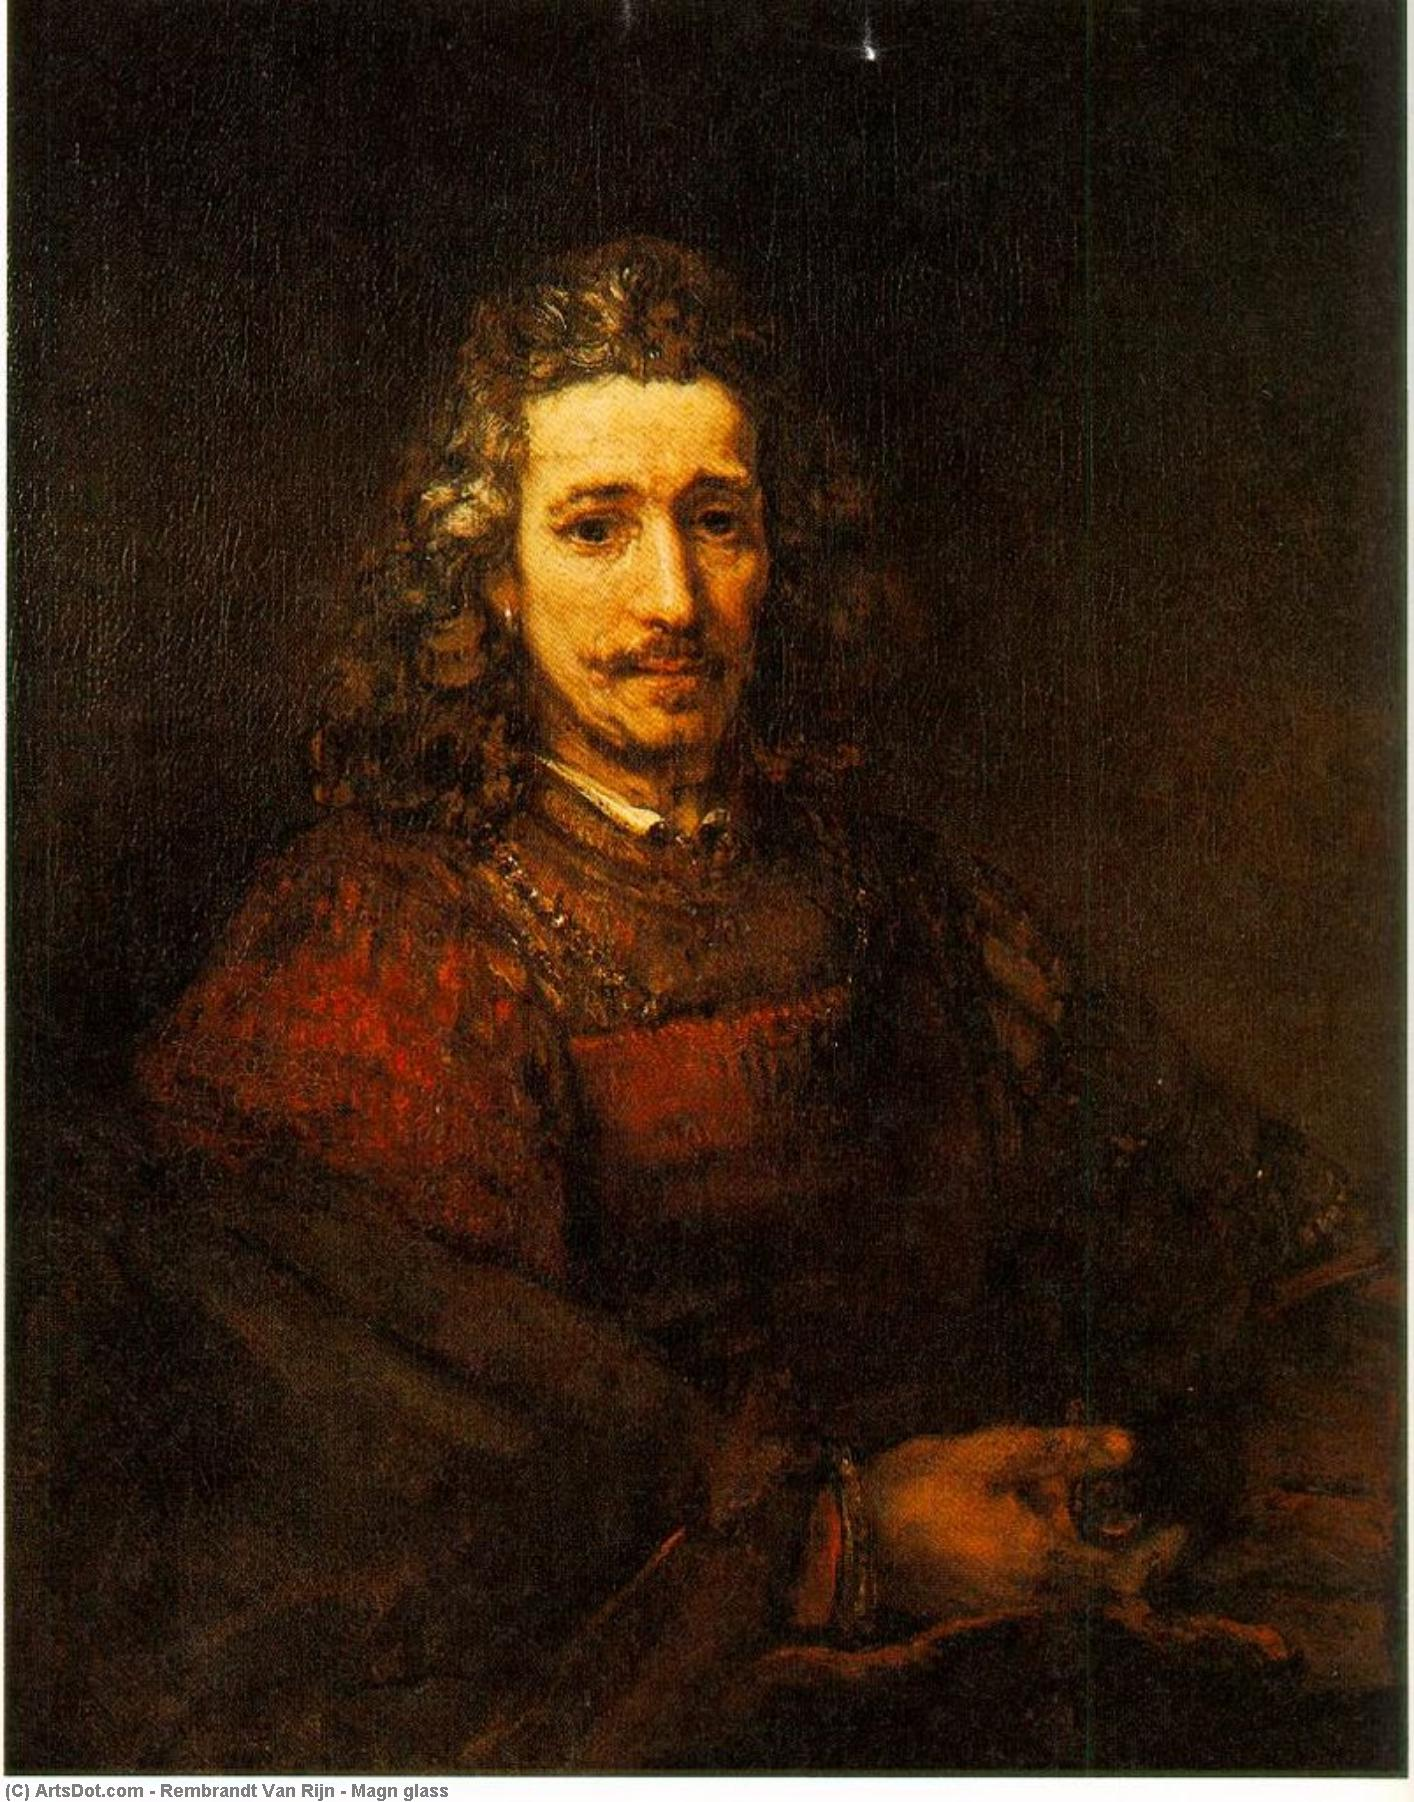 Wikioo.org - The Encyclopedia of Fine Arts - Painting, Artwork by Rembrandt Van Rijn - Magn glass